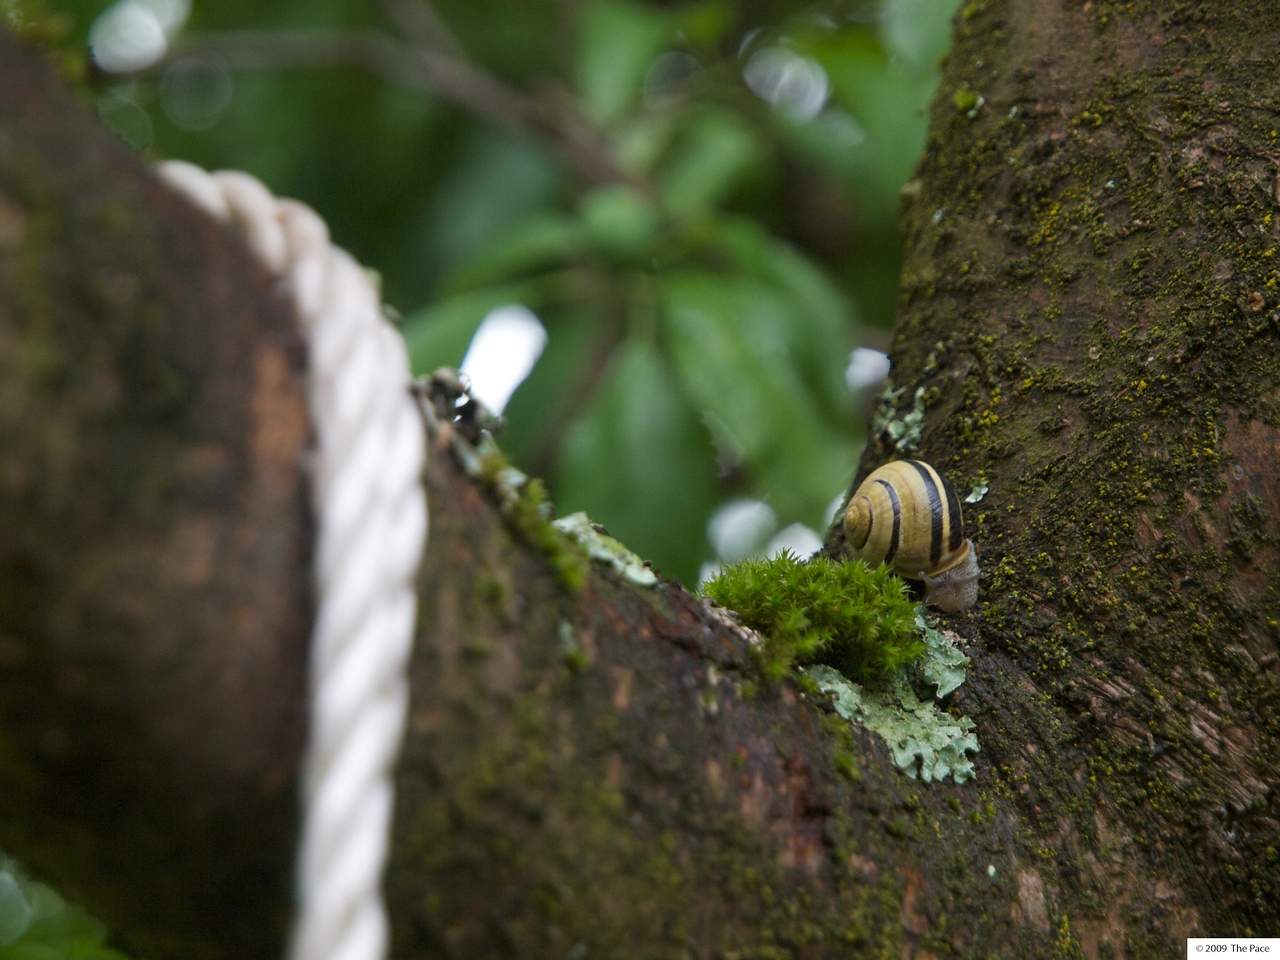 Week 24 - Like I said before the snails have headed to the trees